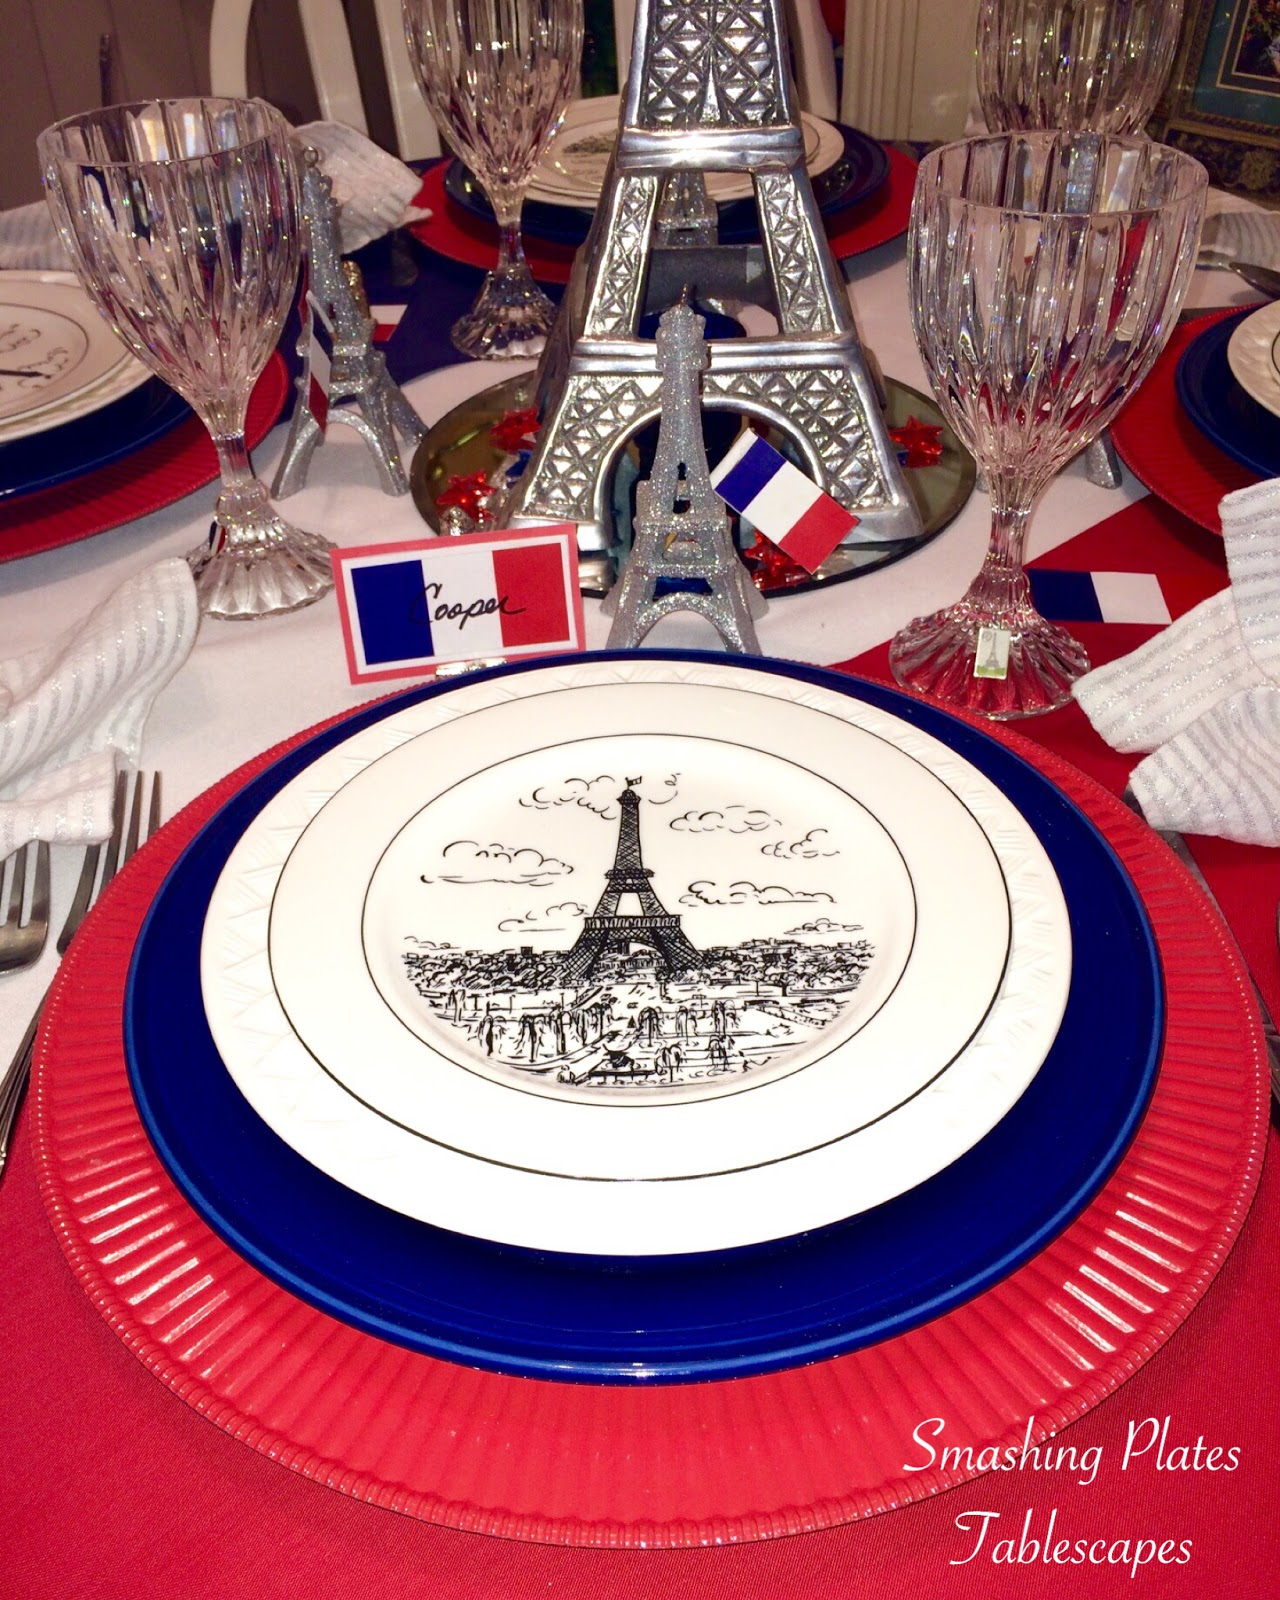 Eiffel Tower centerpiece. & Smashing Plates Tablescapes: Bastille Day